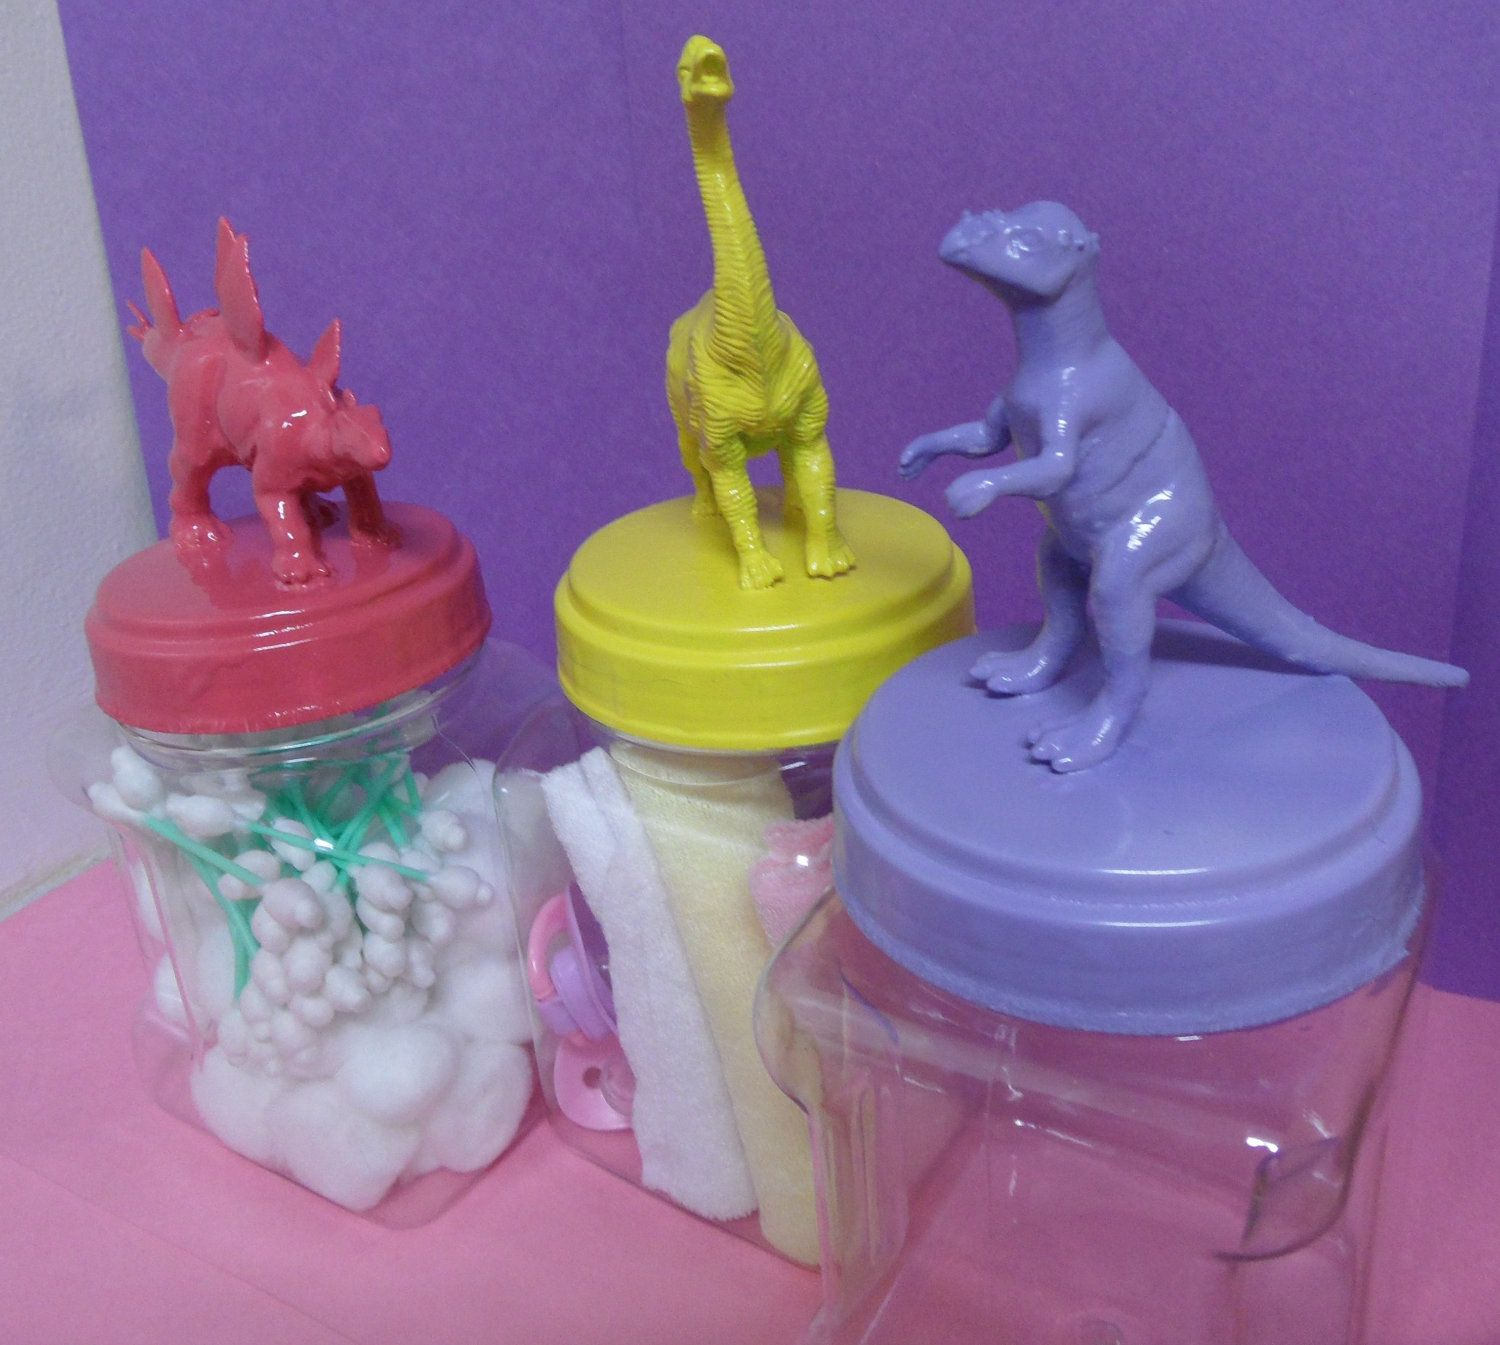 Plastic Dinosaur Jars Making These Out Of Old Paint And Toys Doesn T Have To Be Dinosaurs